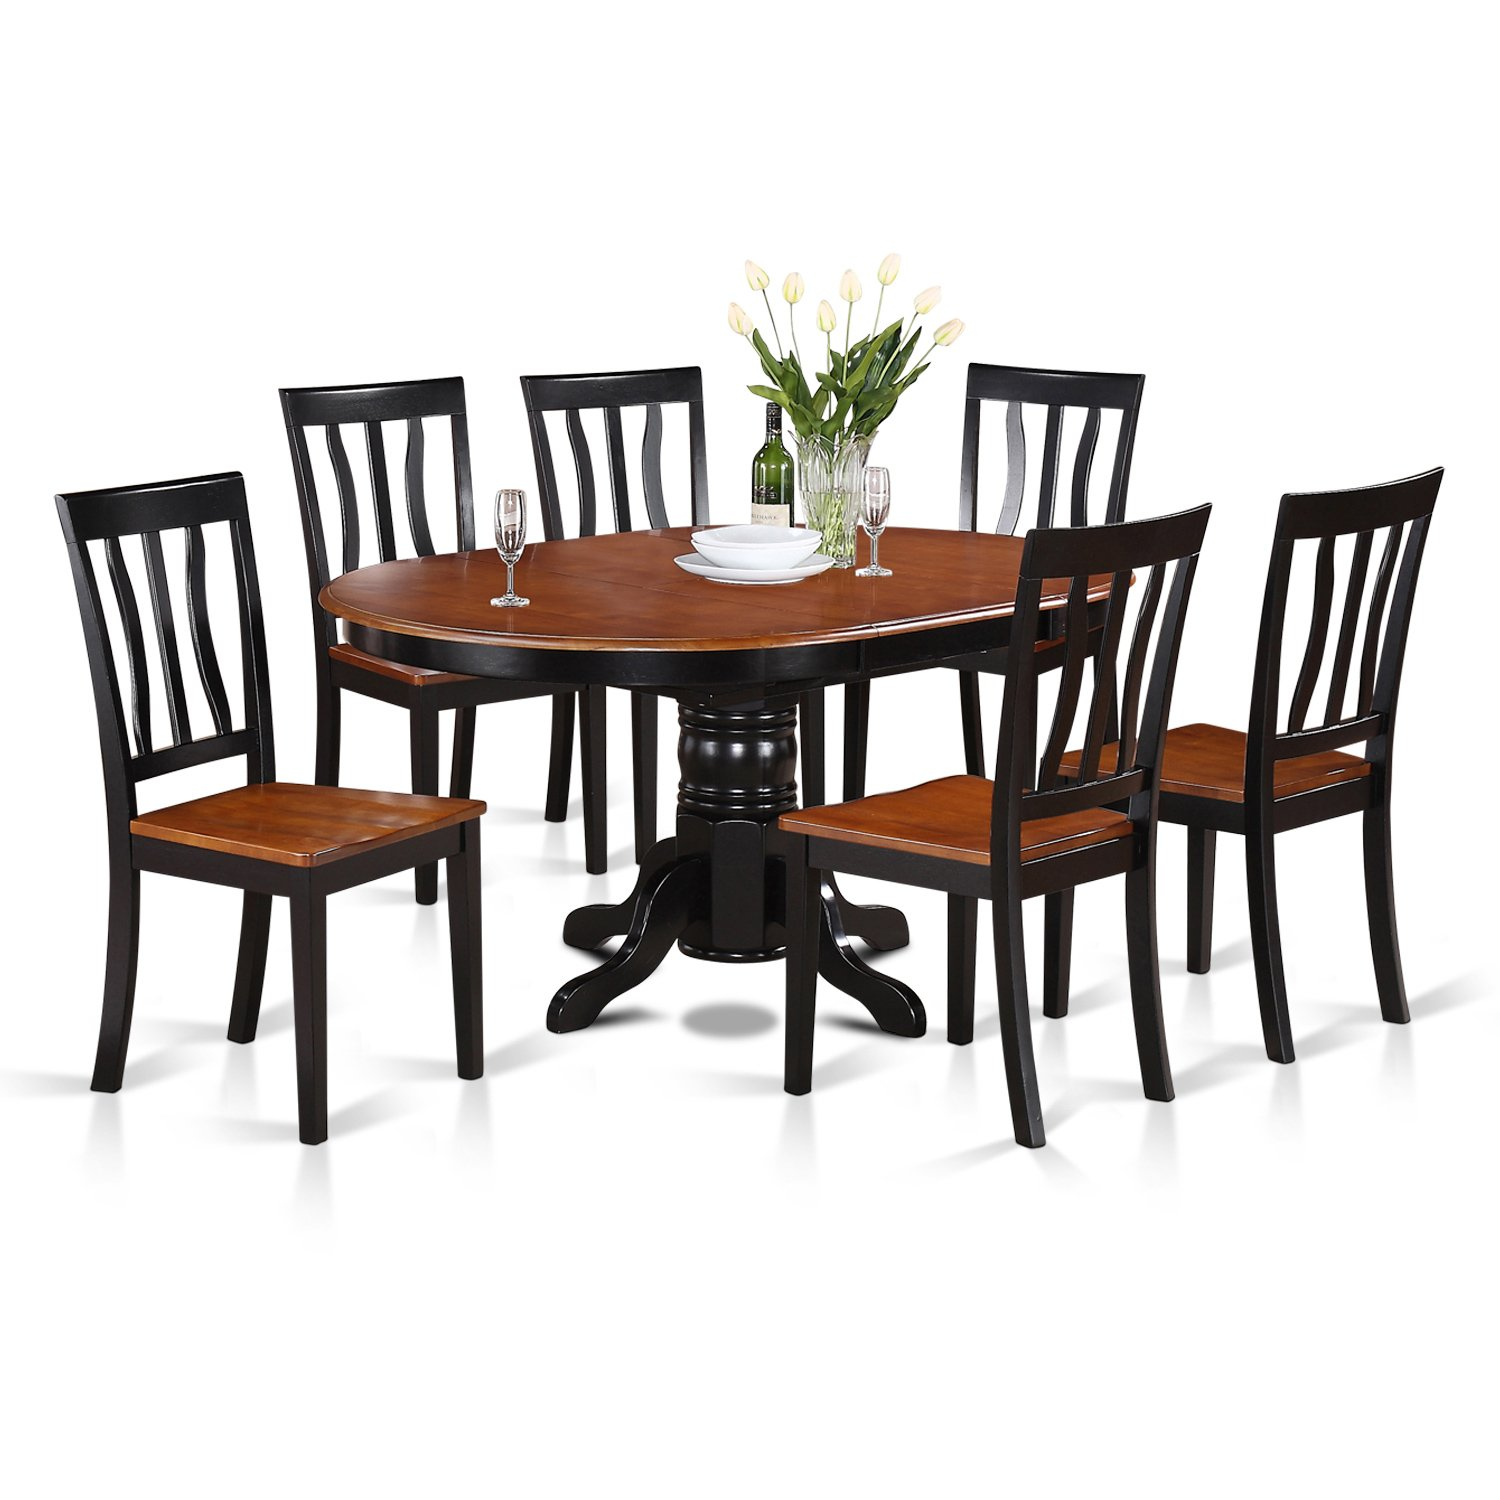 Amazoncom East West Furniture AVATBLKW Piece Dining Table - Round pedestal dining table set with leaf